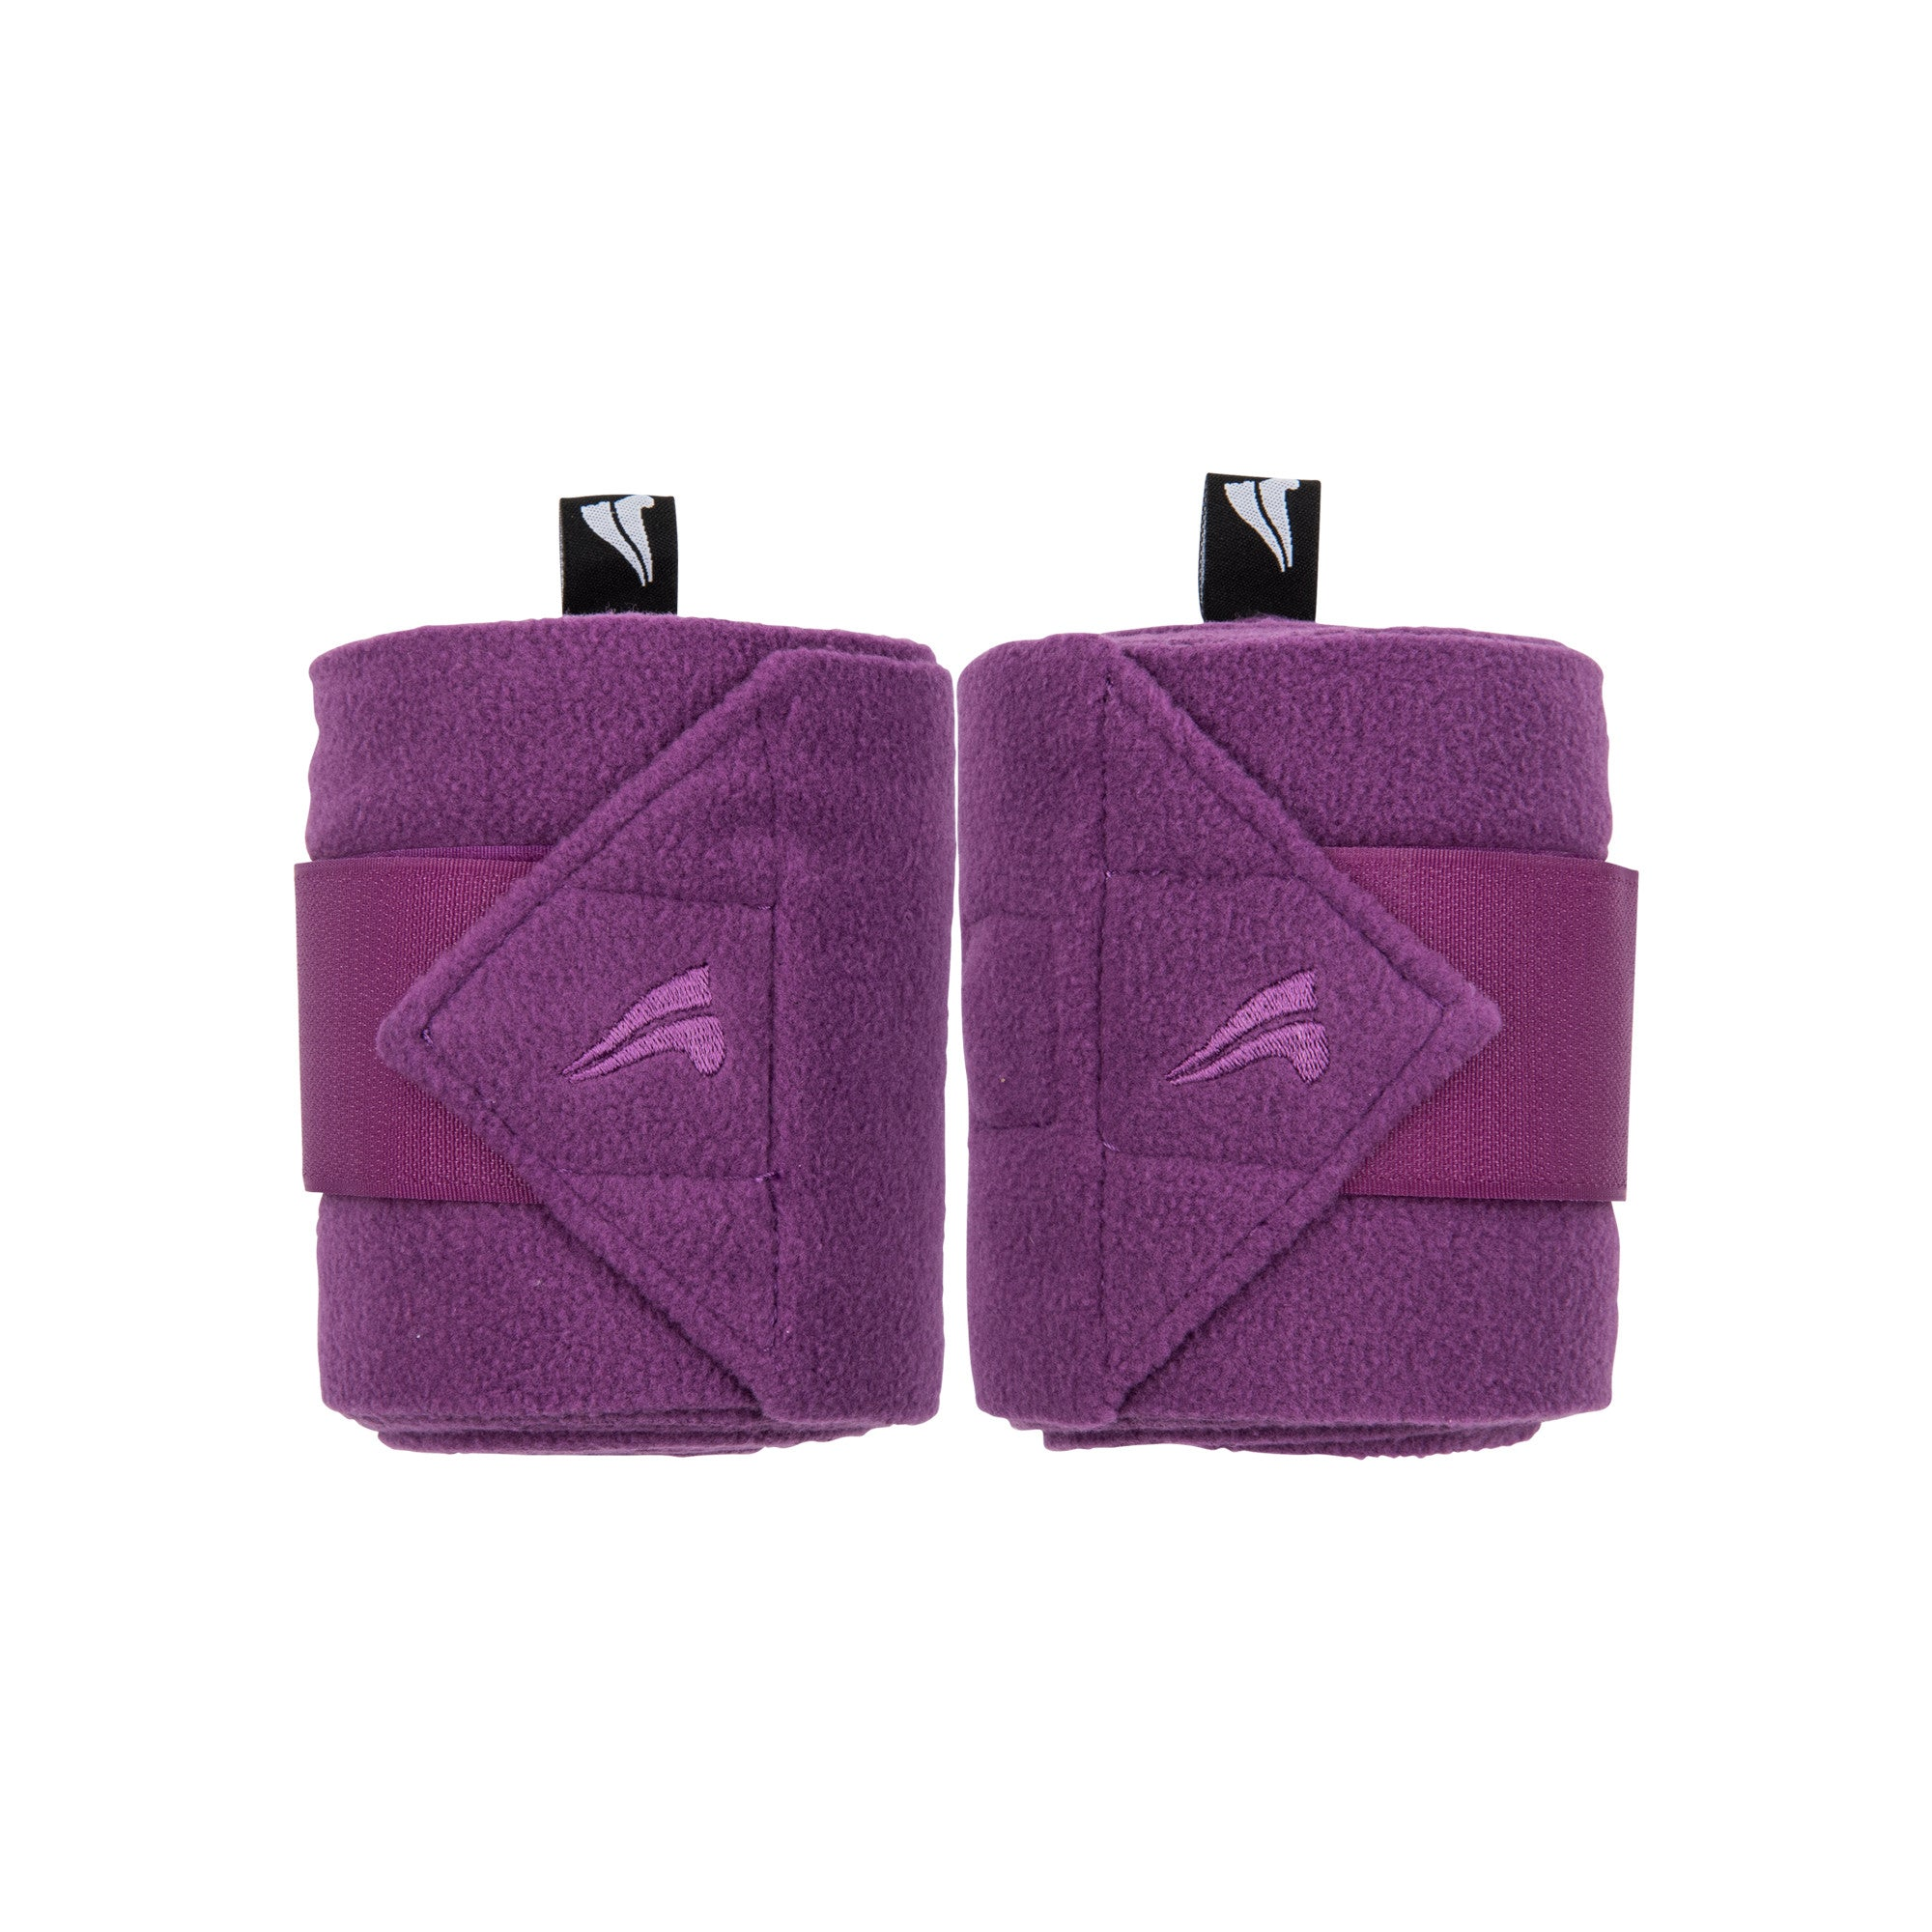 Euro-star SS17 Fleece Bandages - All Colours - Divine Equestrian